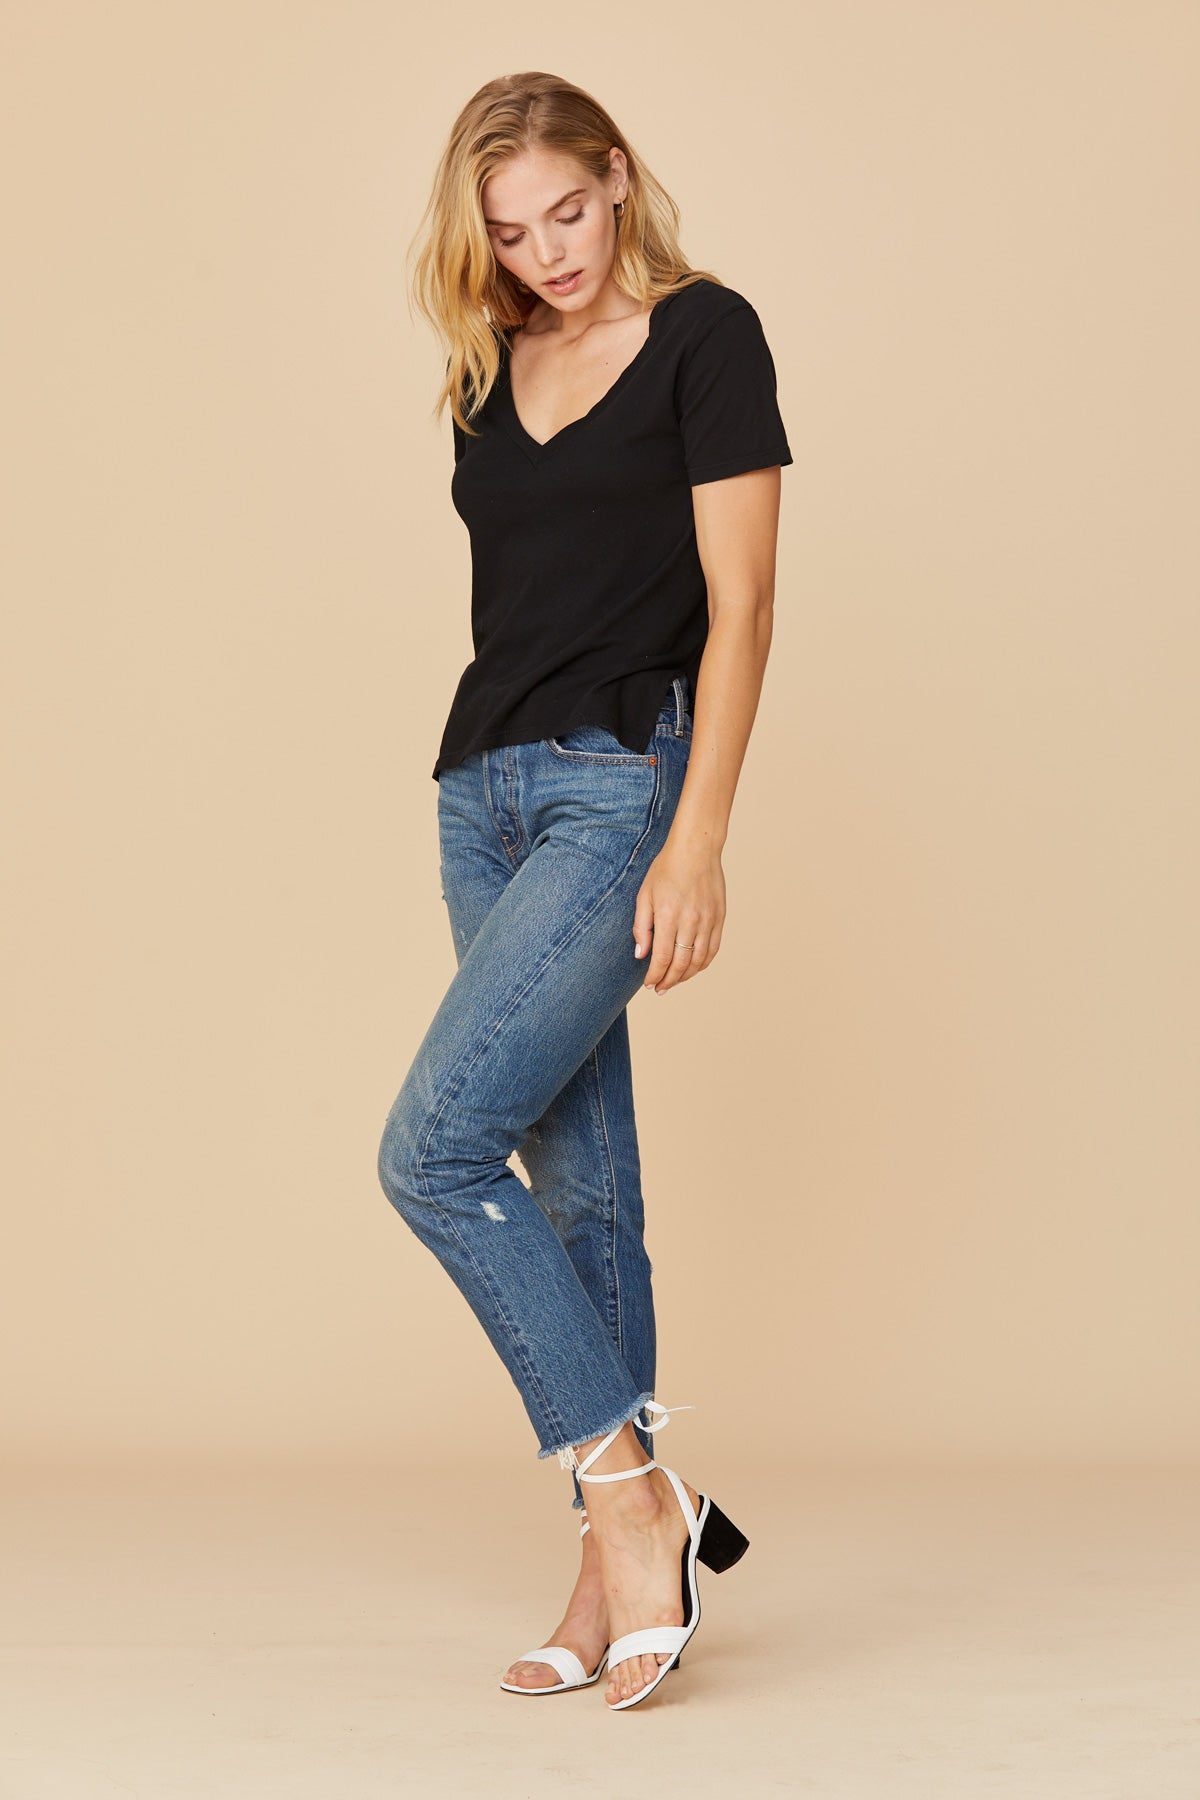 LNA Reese V Neck Tee in Black Cotton